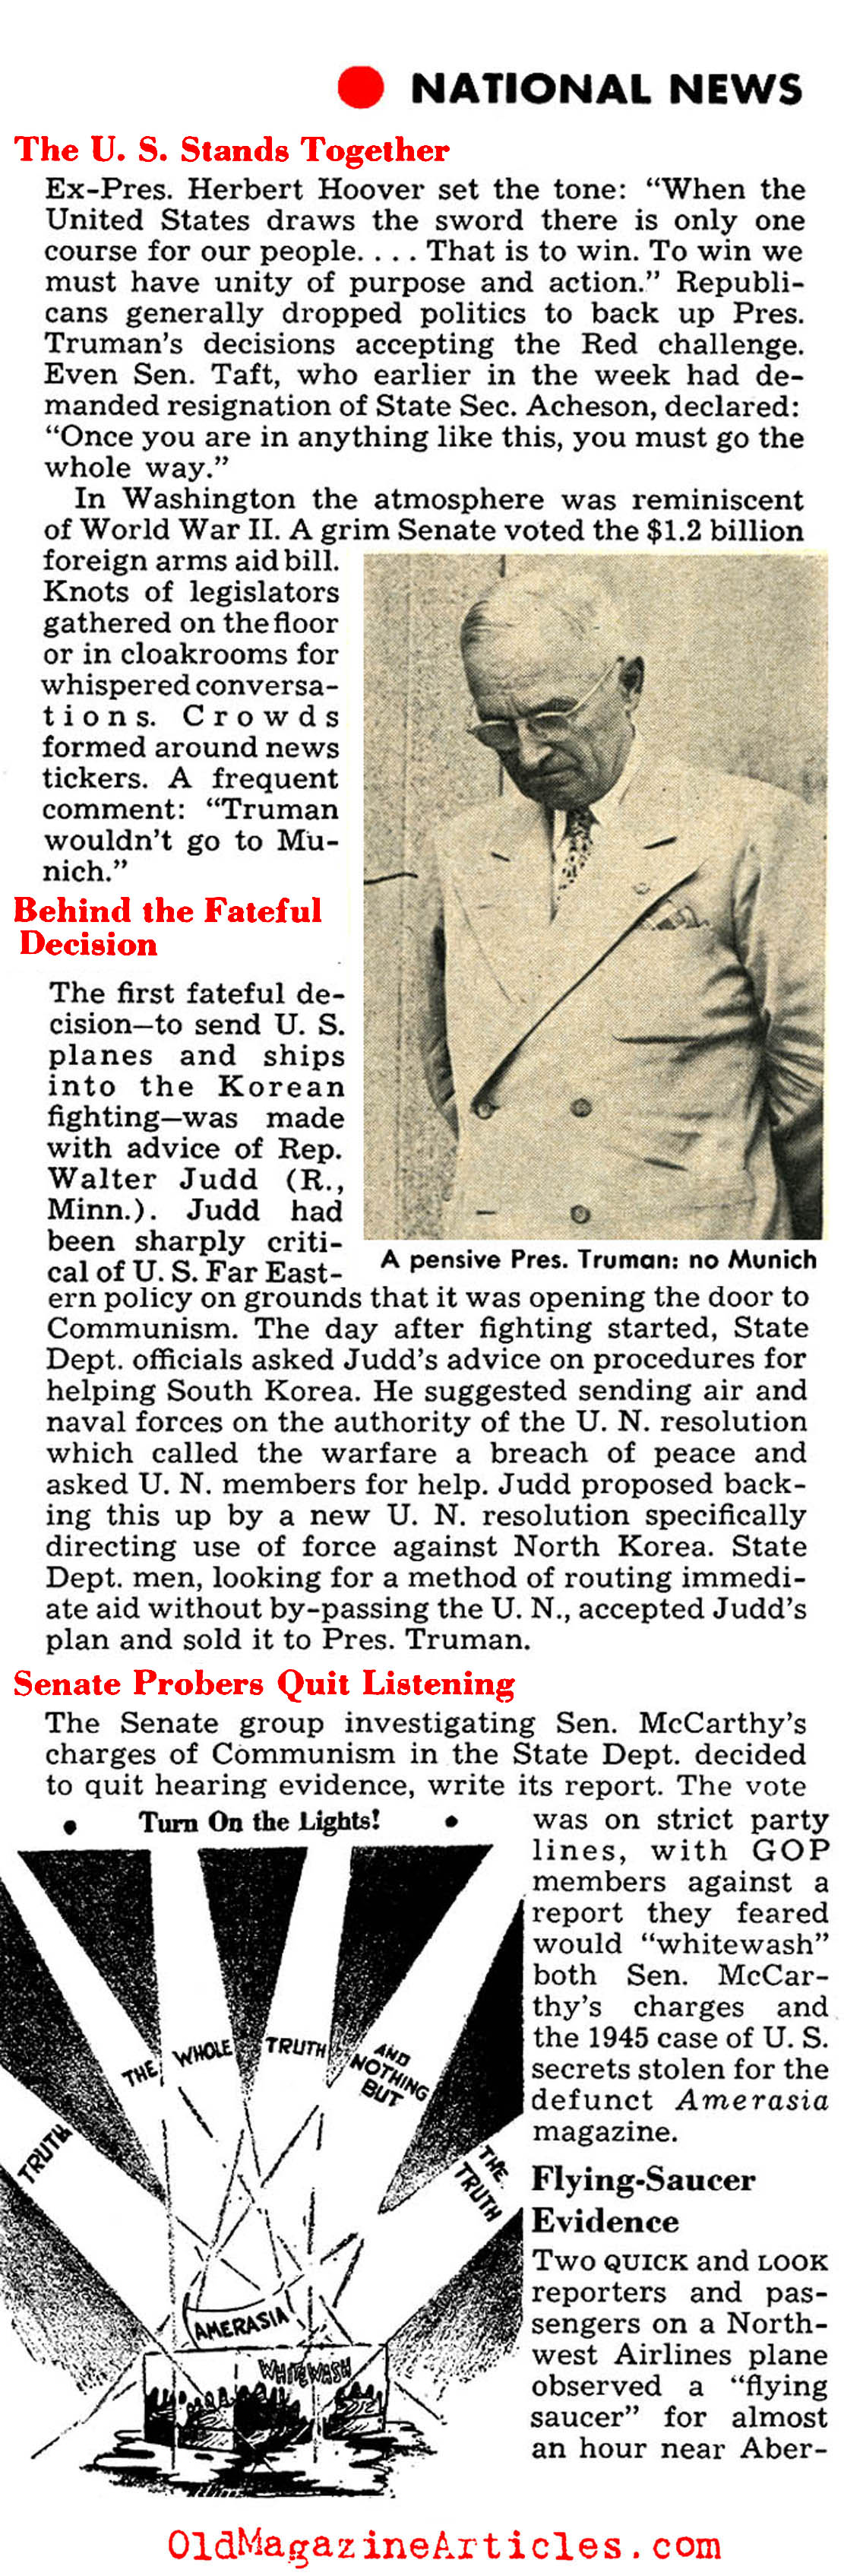 Tensions Build in Washington (Quick Magazine, 1950)